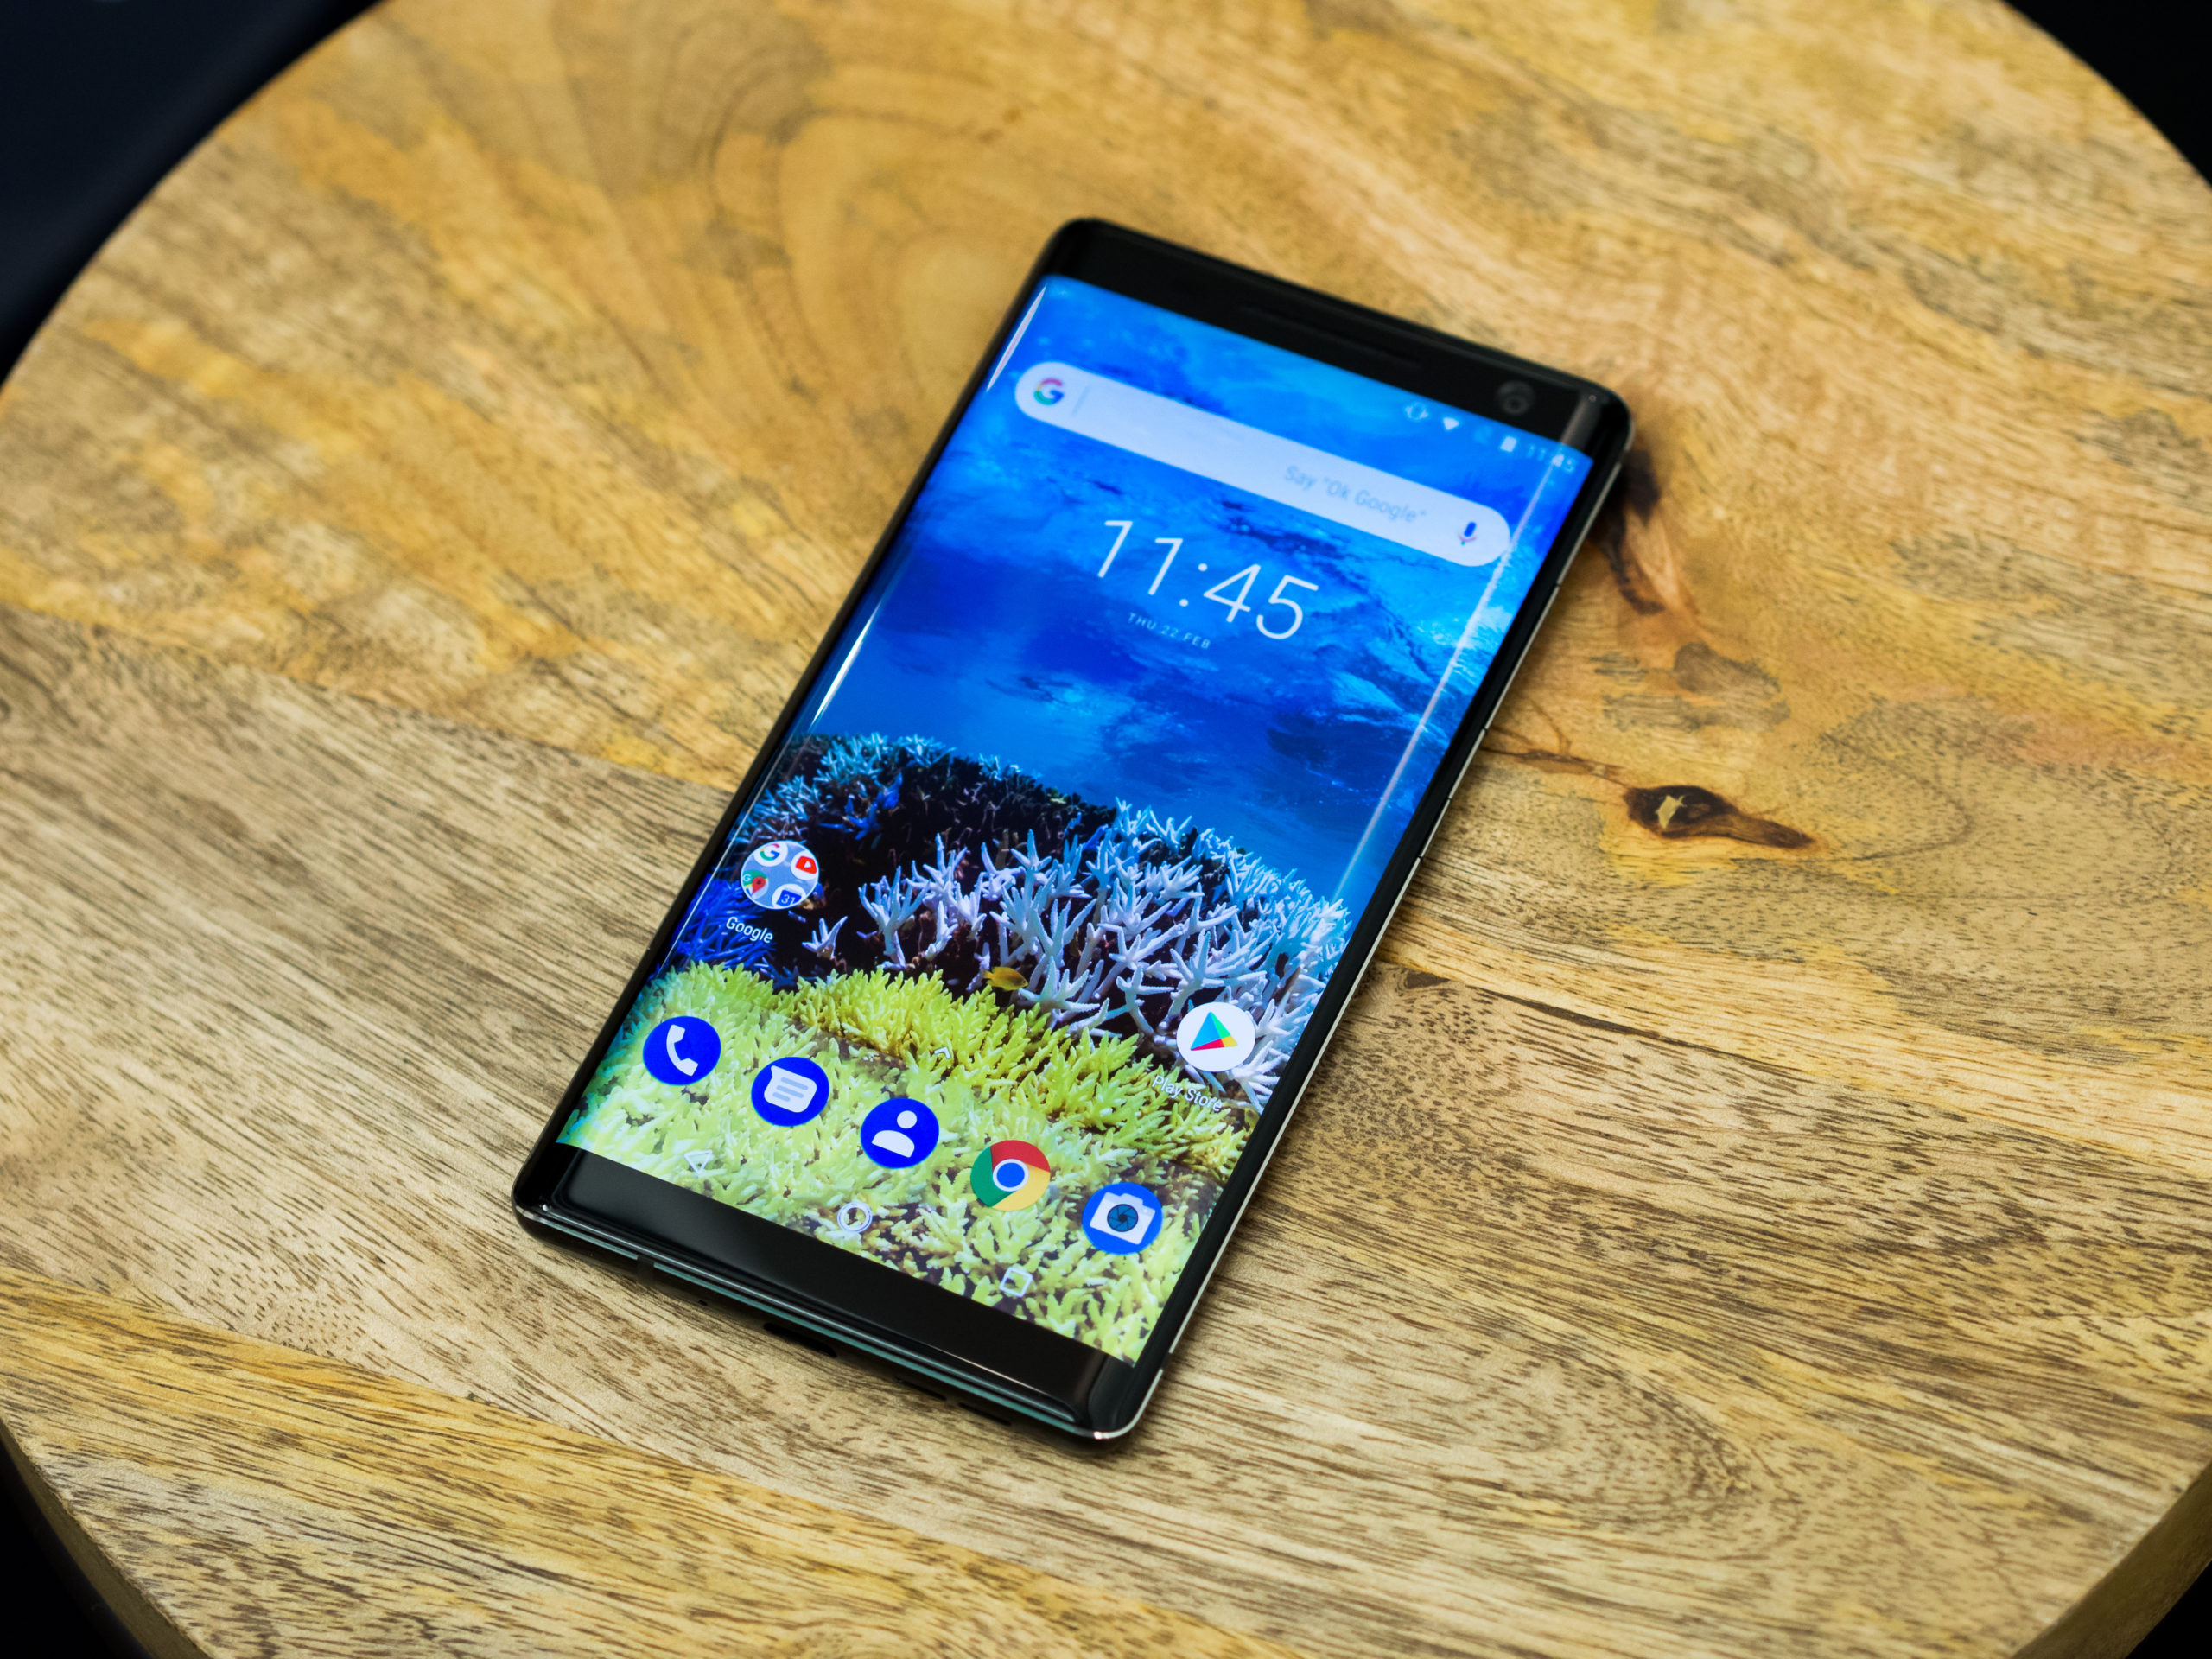 Nokia 8 Sirocco Android 10 update starts rolling out in India